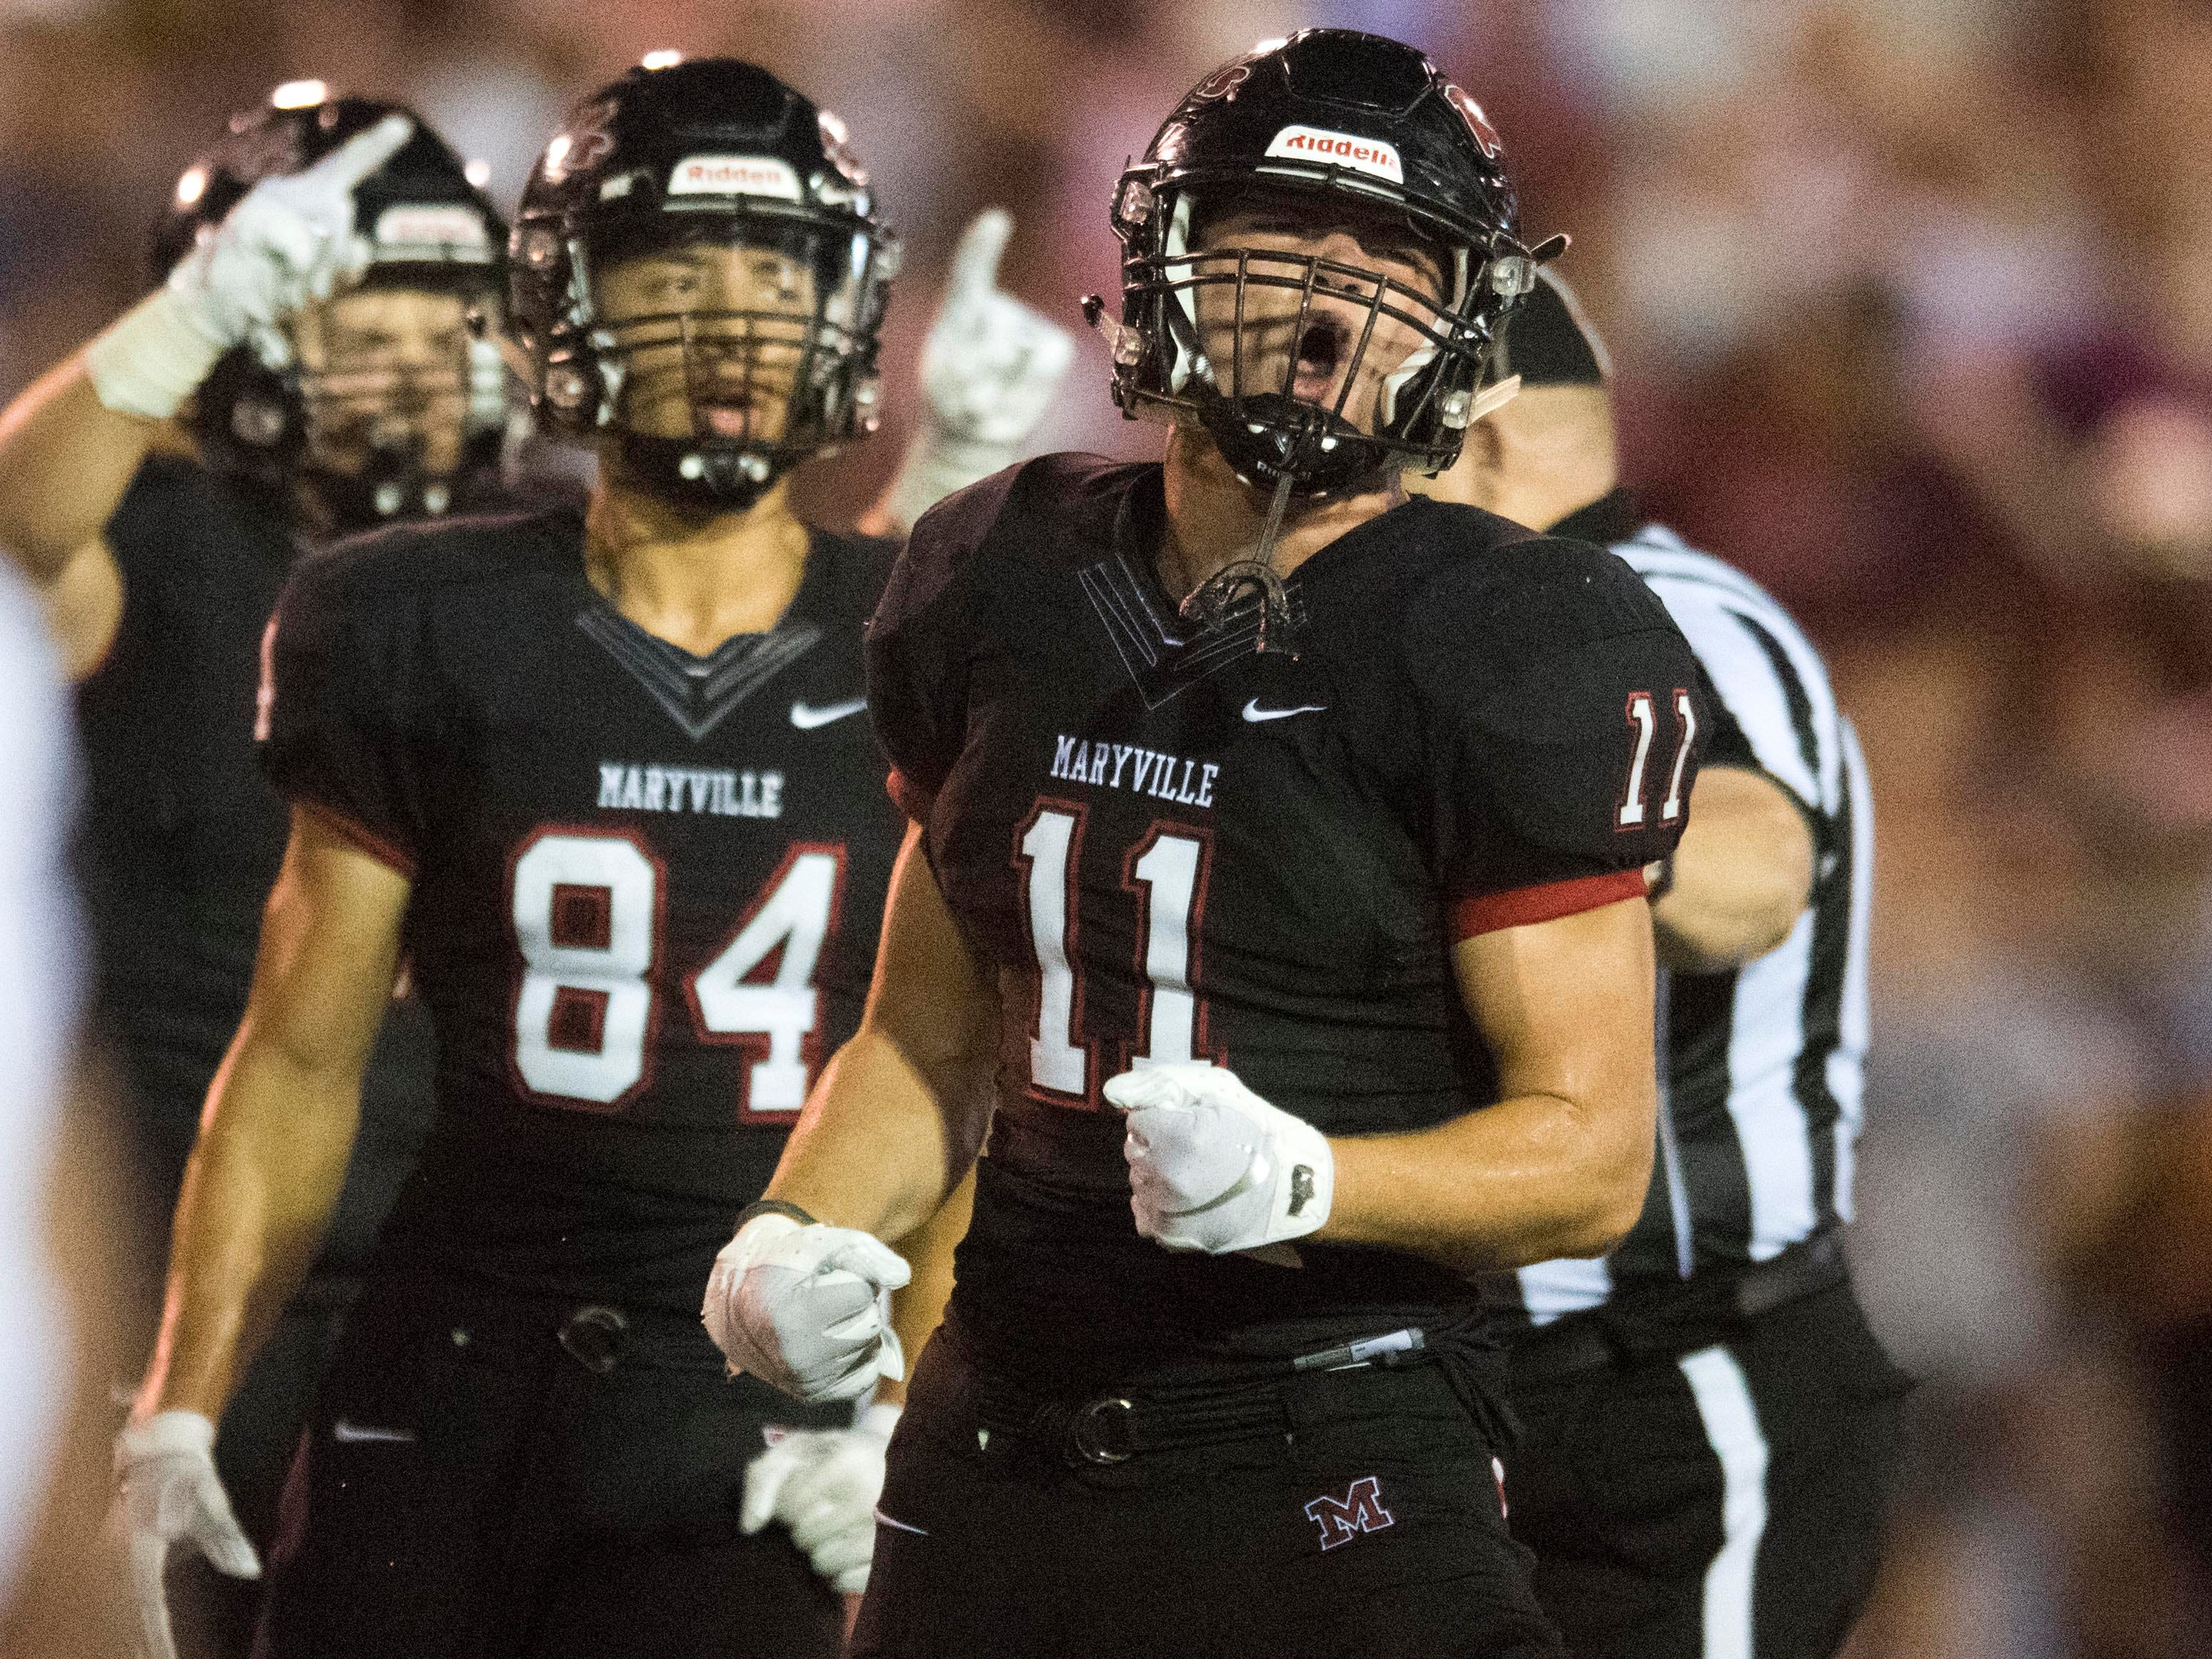 Maryville's Spencer Shore (11) celebrates after a play during the football game against Alcoa on Friday, September 7, 2018.